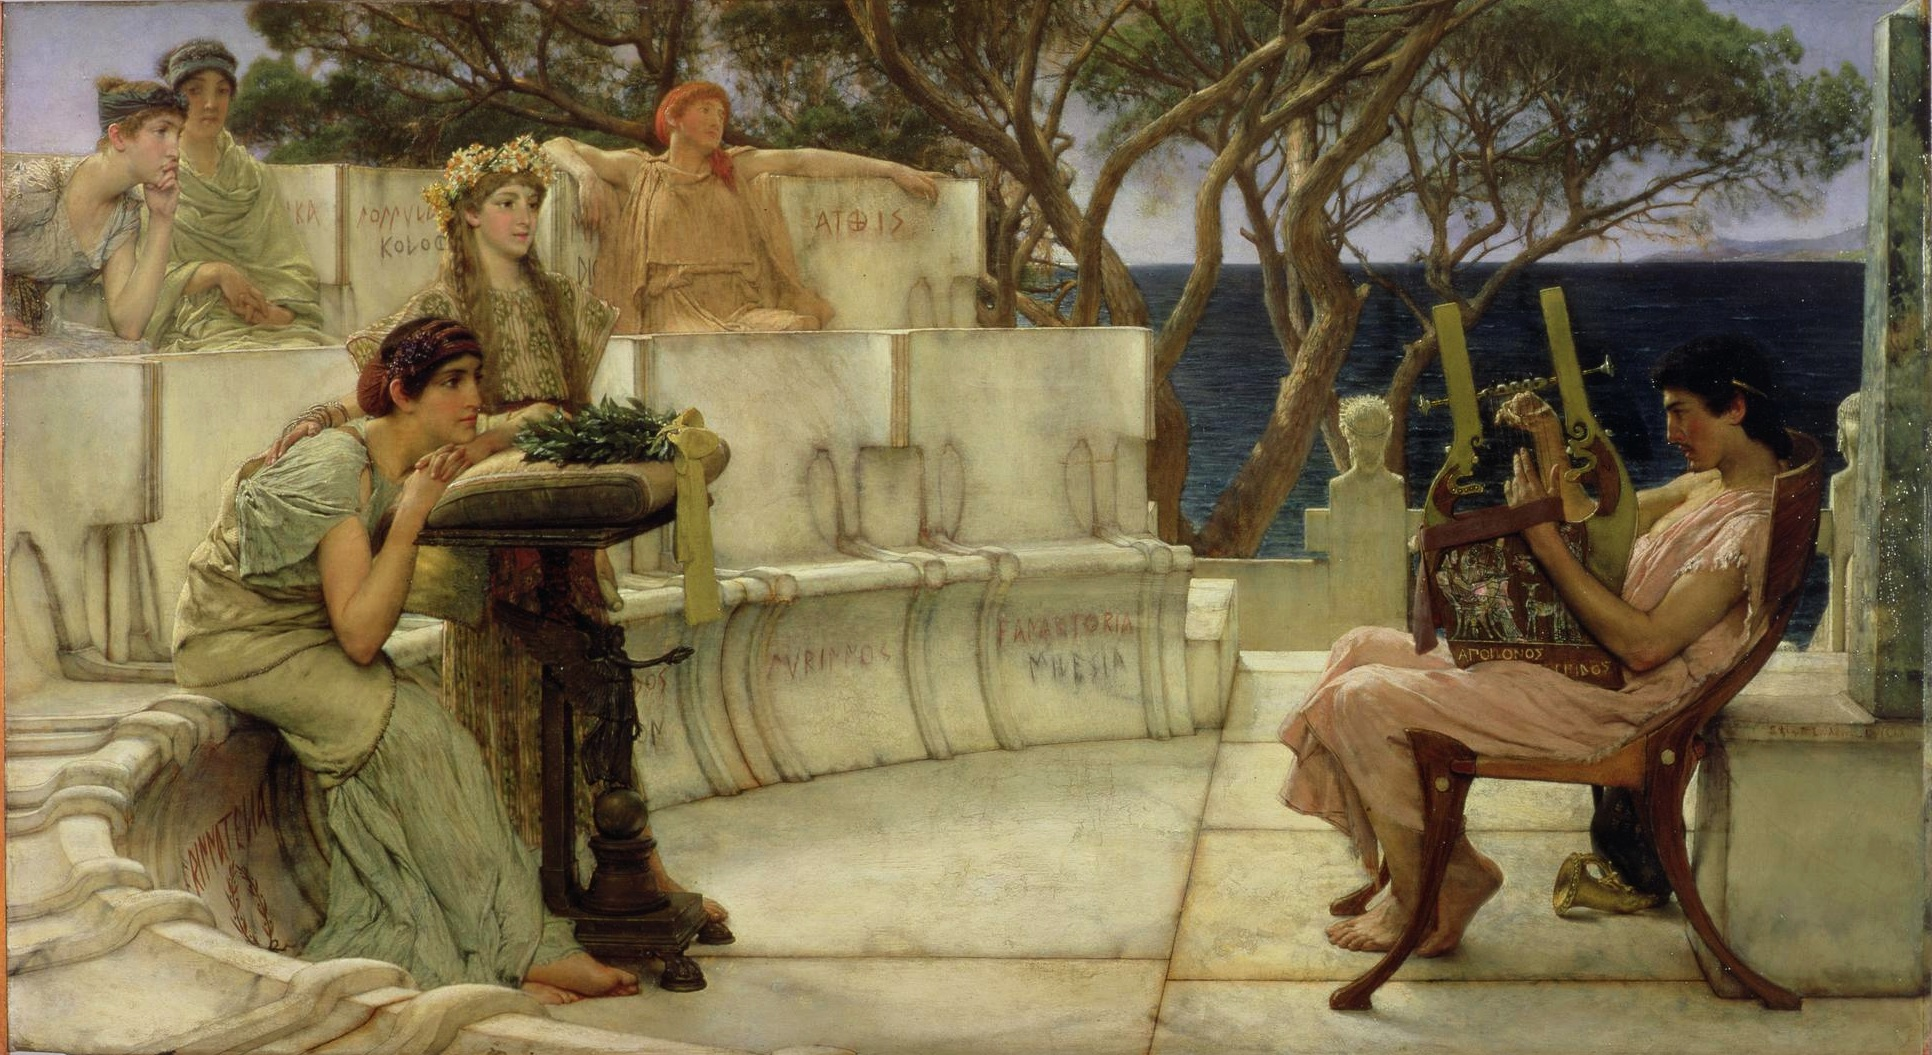 http://upload.wikimedia.org/wikipedia/commons/d/d1/Sappho_and_Alcaeus.jpg